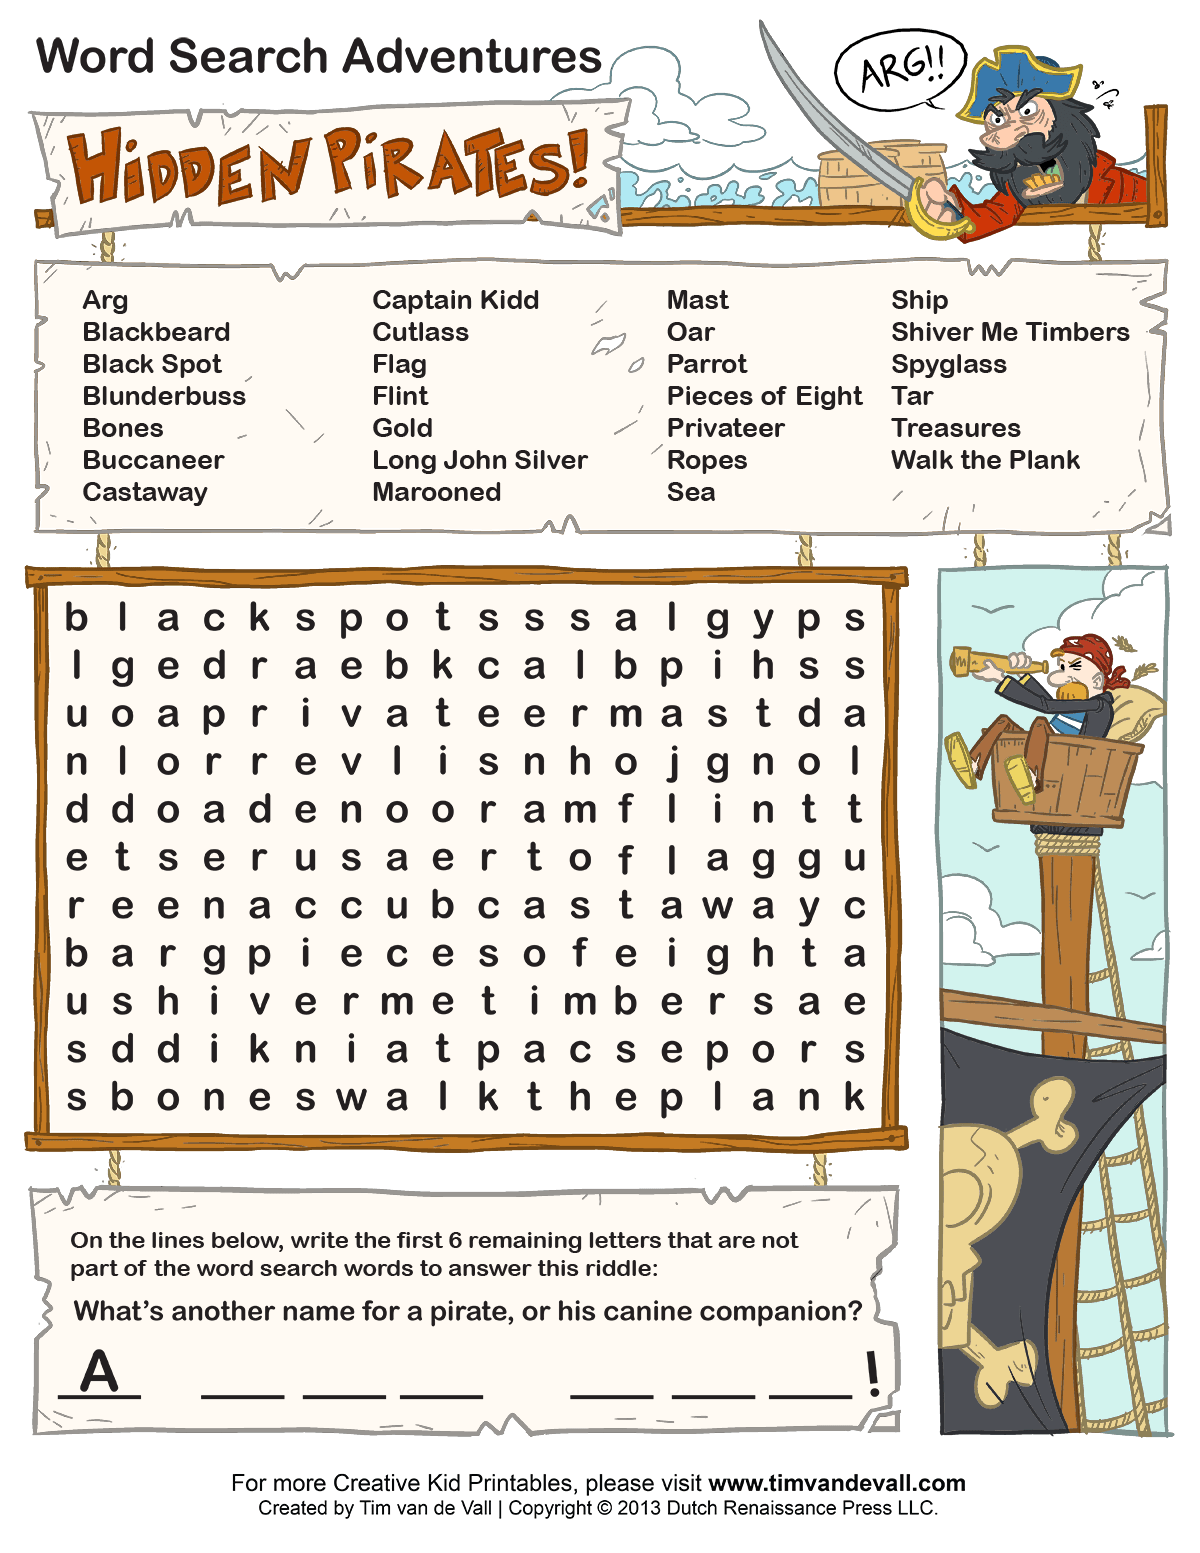 Free Printable Word Searches for Kids - Tim's Printables